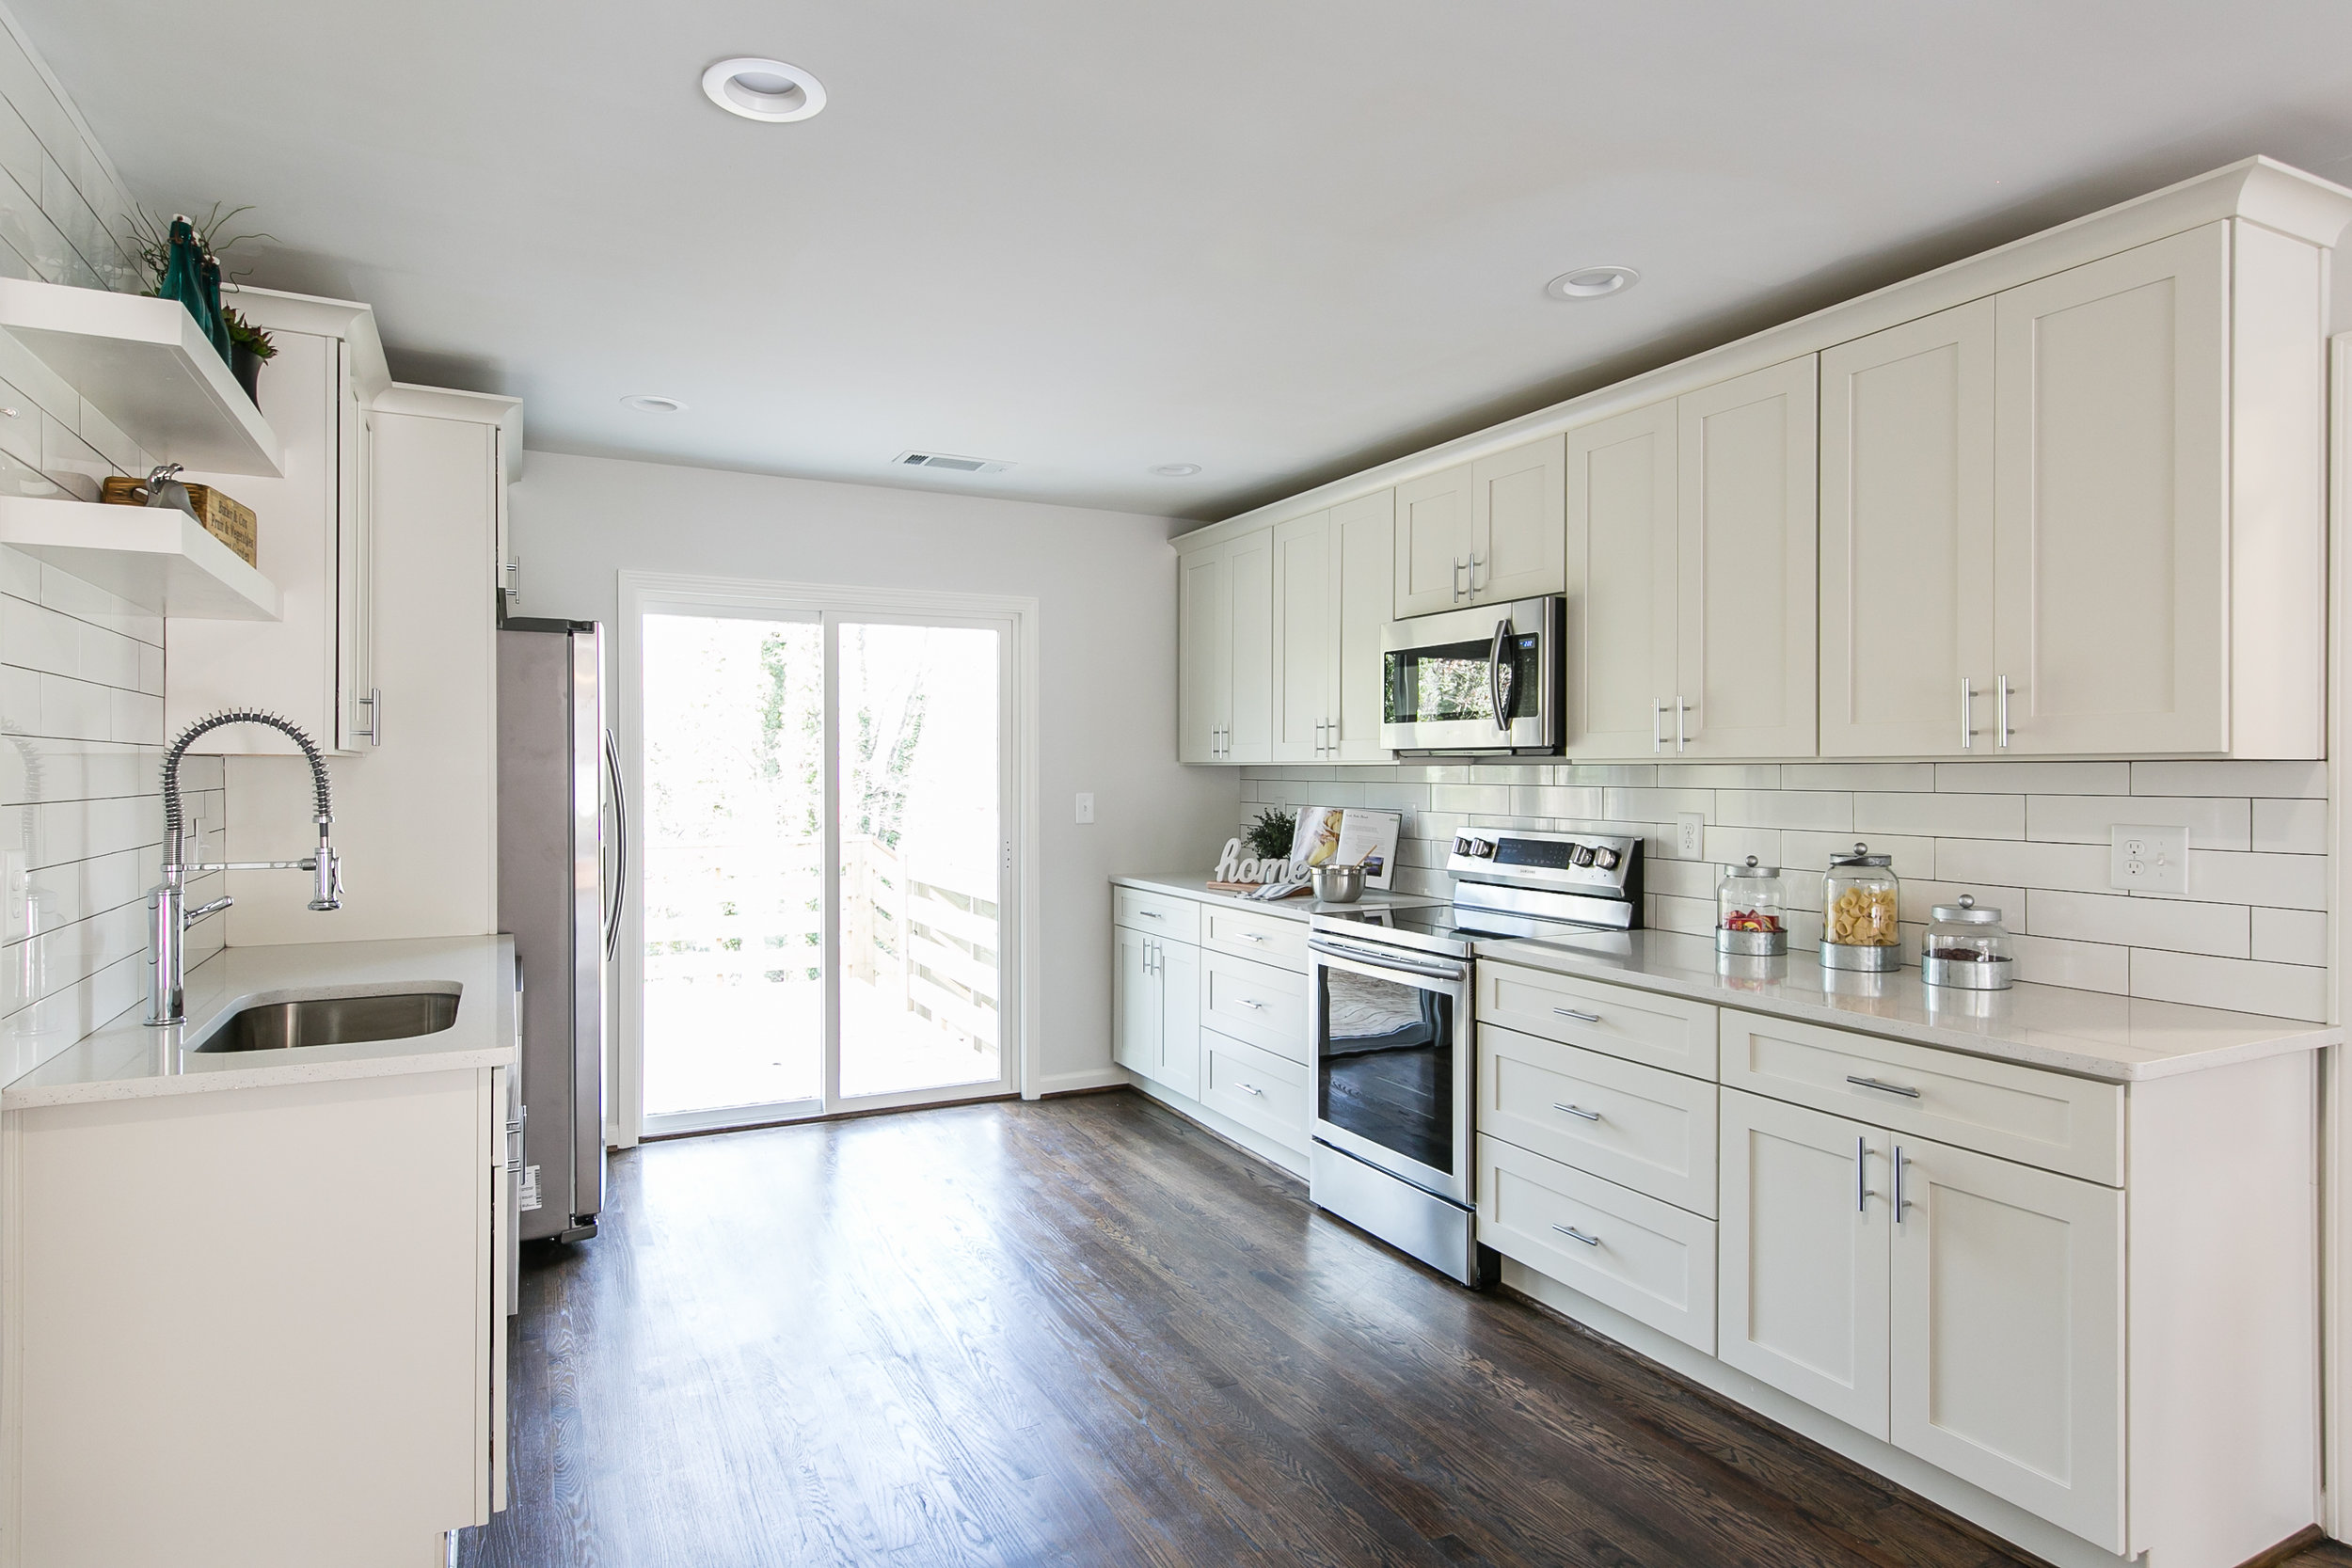 2105 Honeysuckle-Kitchen 1.jpg